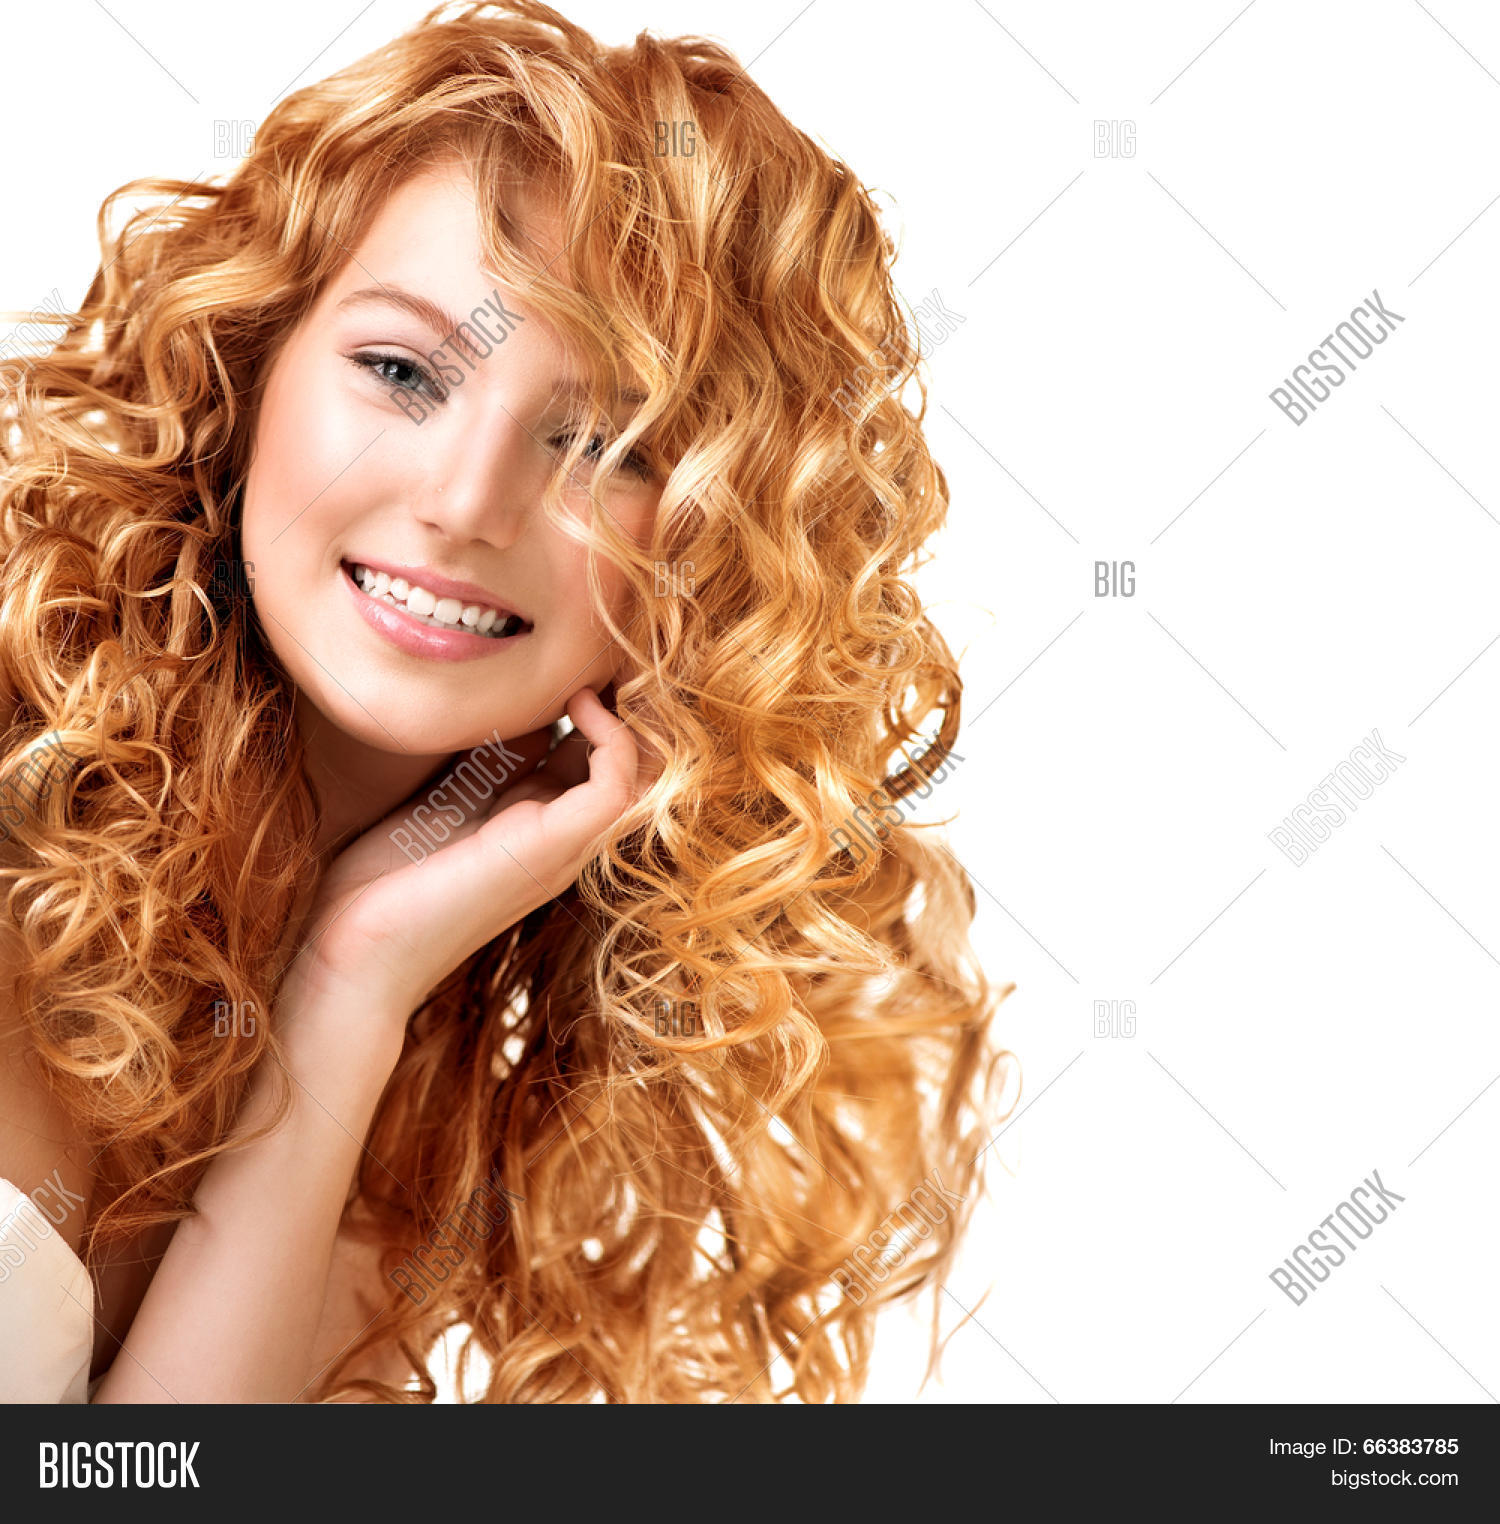 Beauty Teenage Model Image Amp Photo Free Trial Bigstock